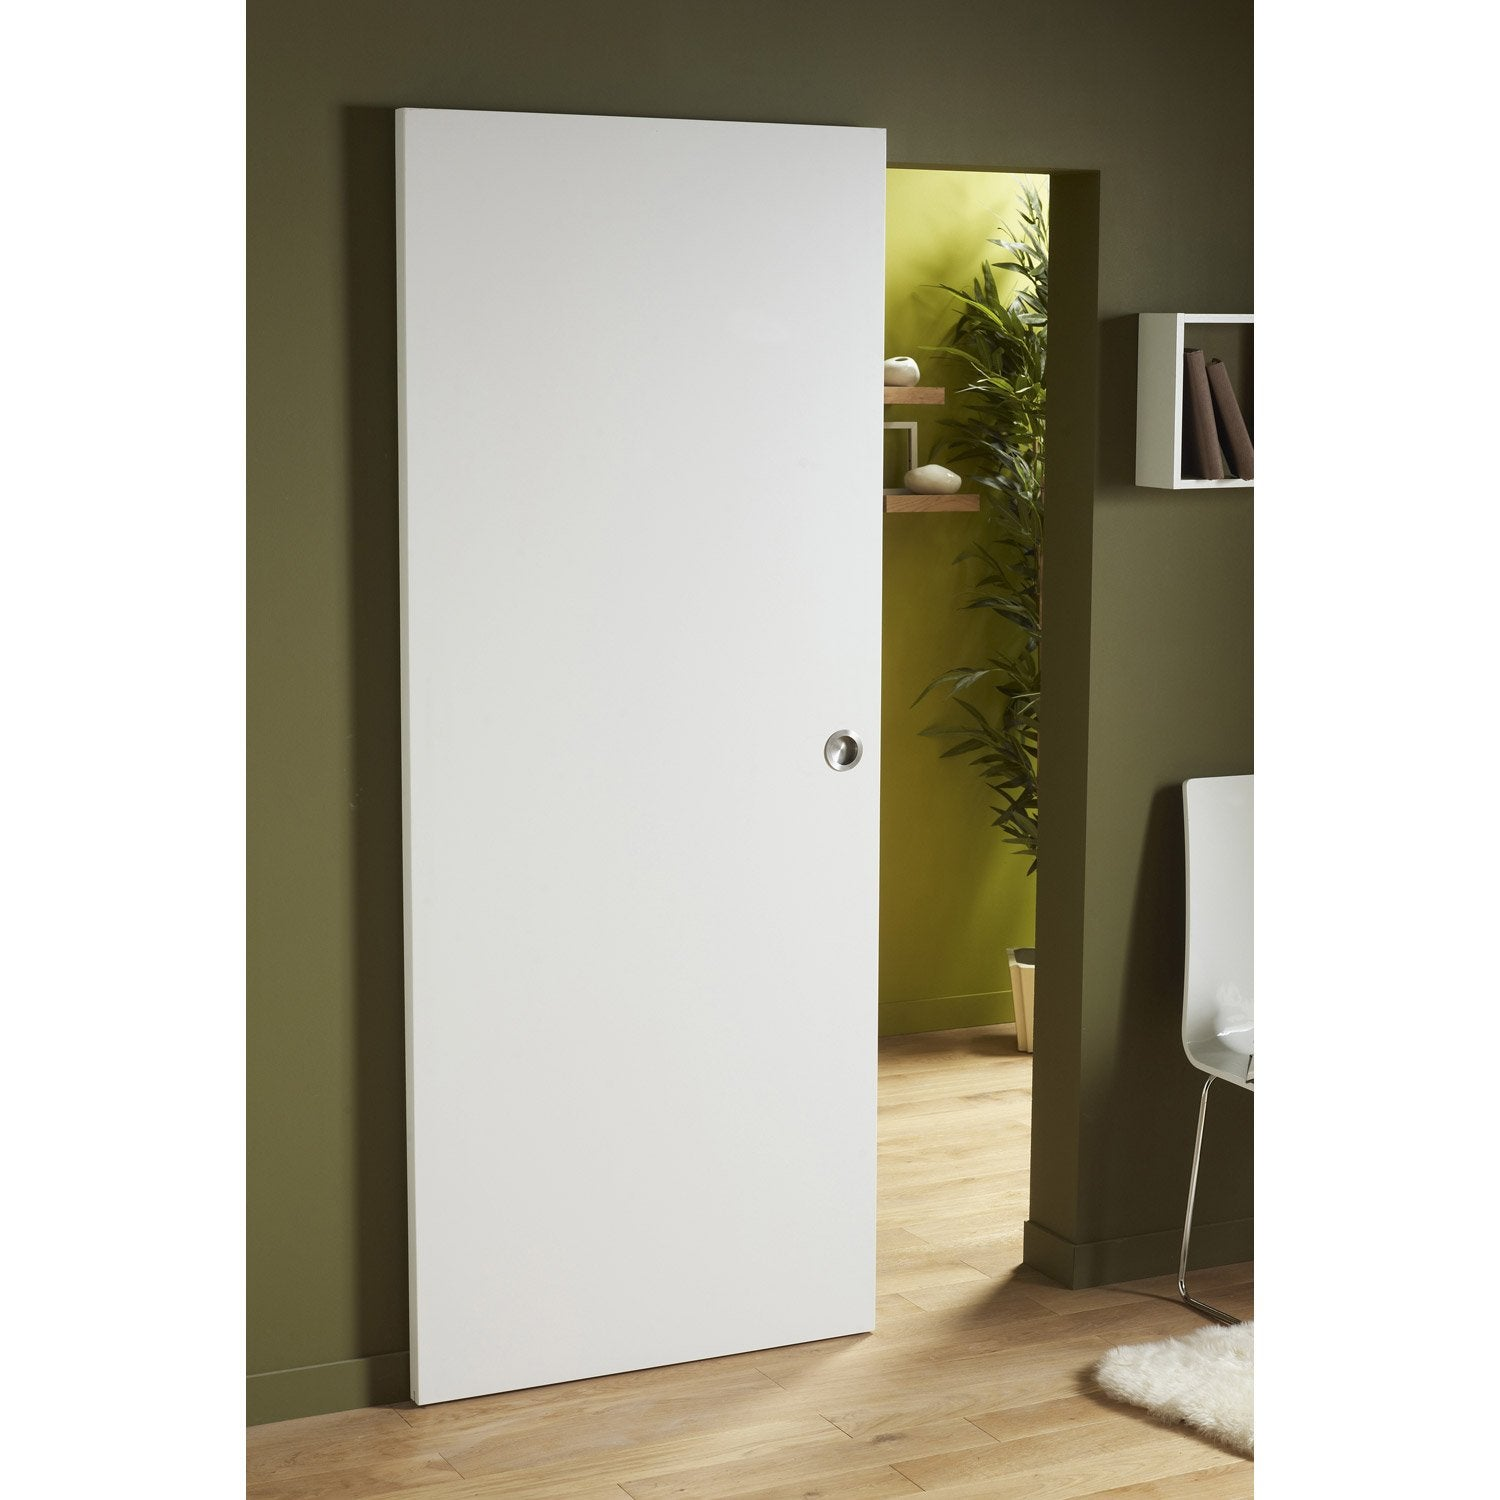 Ensemble porte coulissante lily mdf laqu avec le rail secret en aluminium - Rail coulissant leroy merlin ...